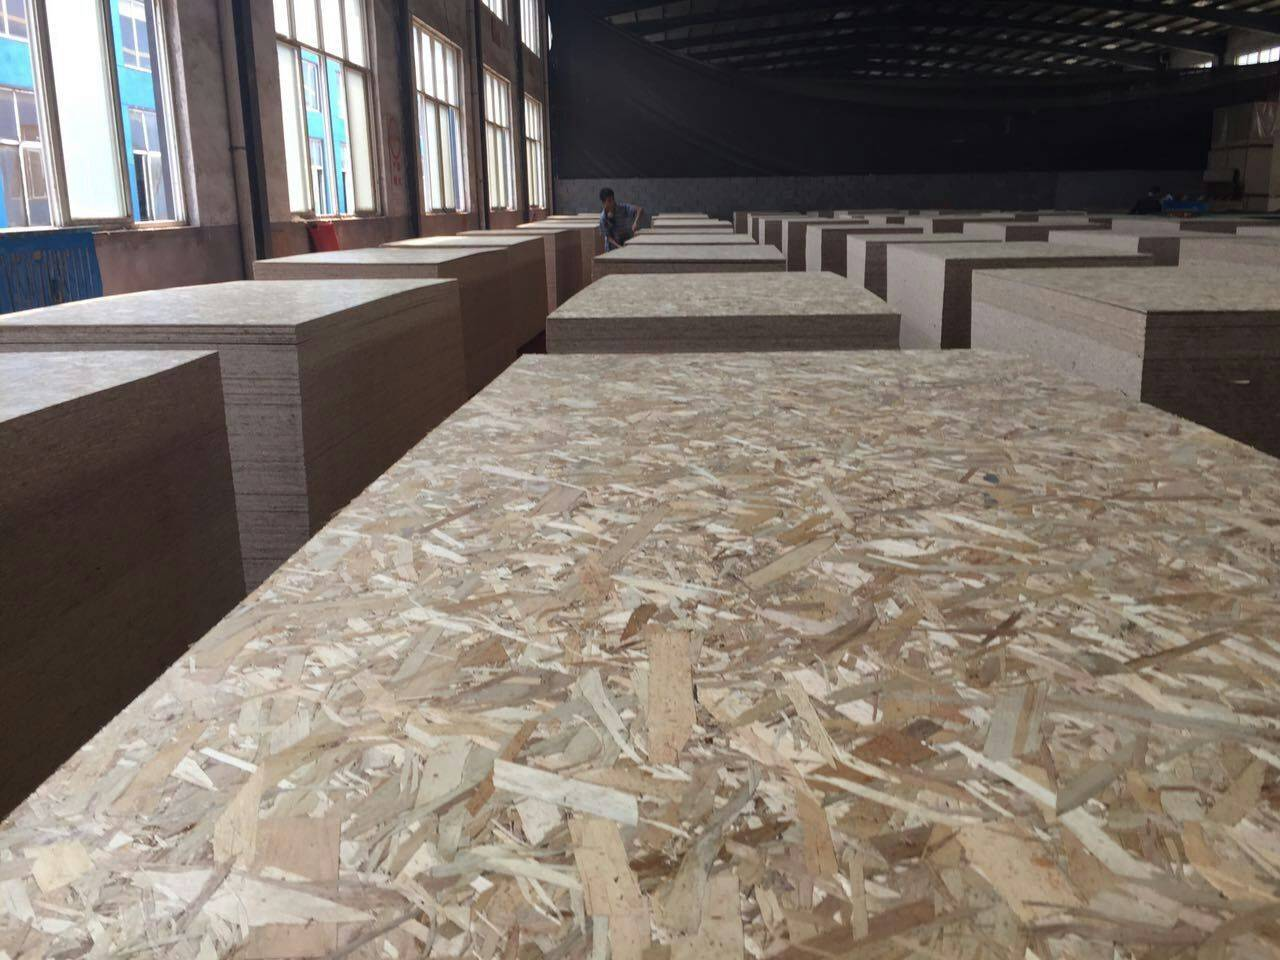 15mm melamine osb 3 (oriented strand board)